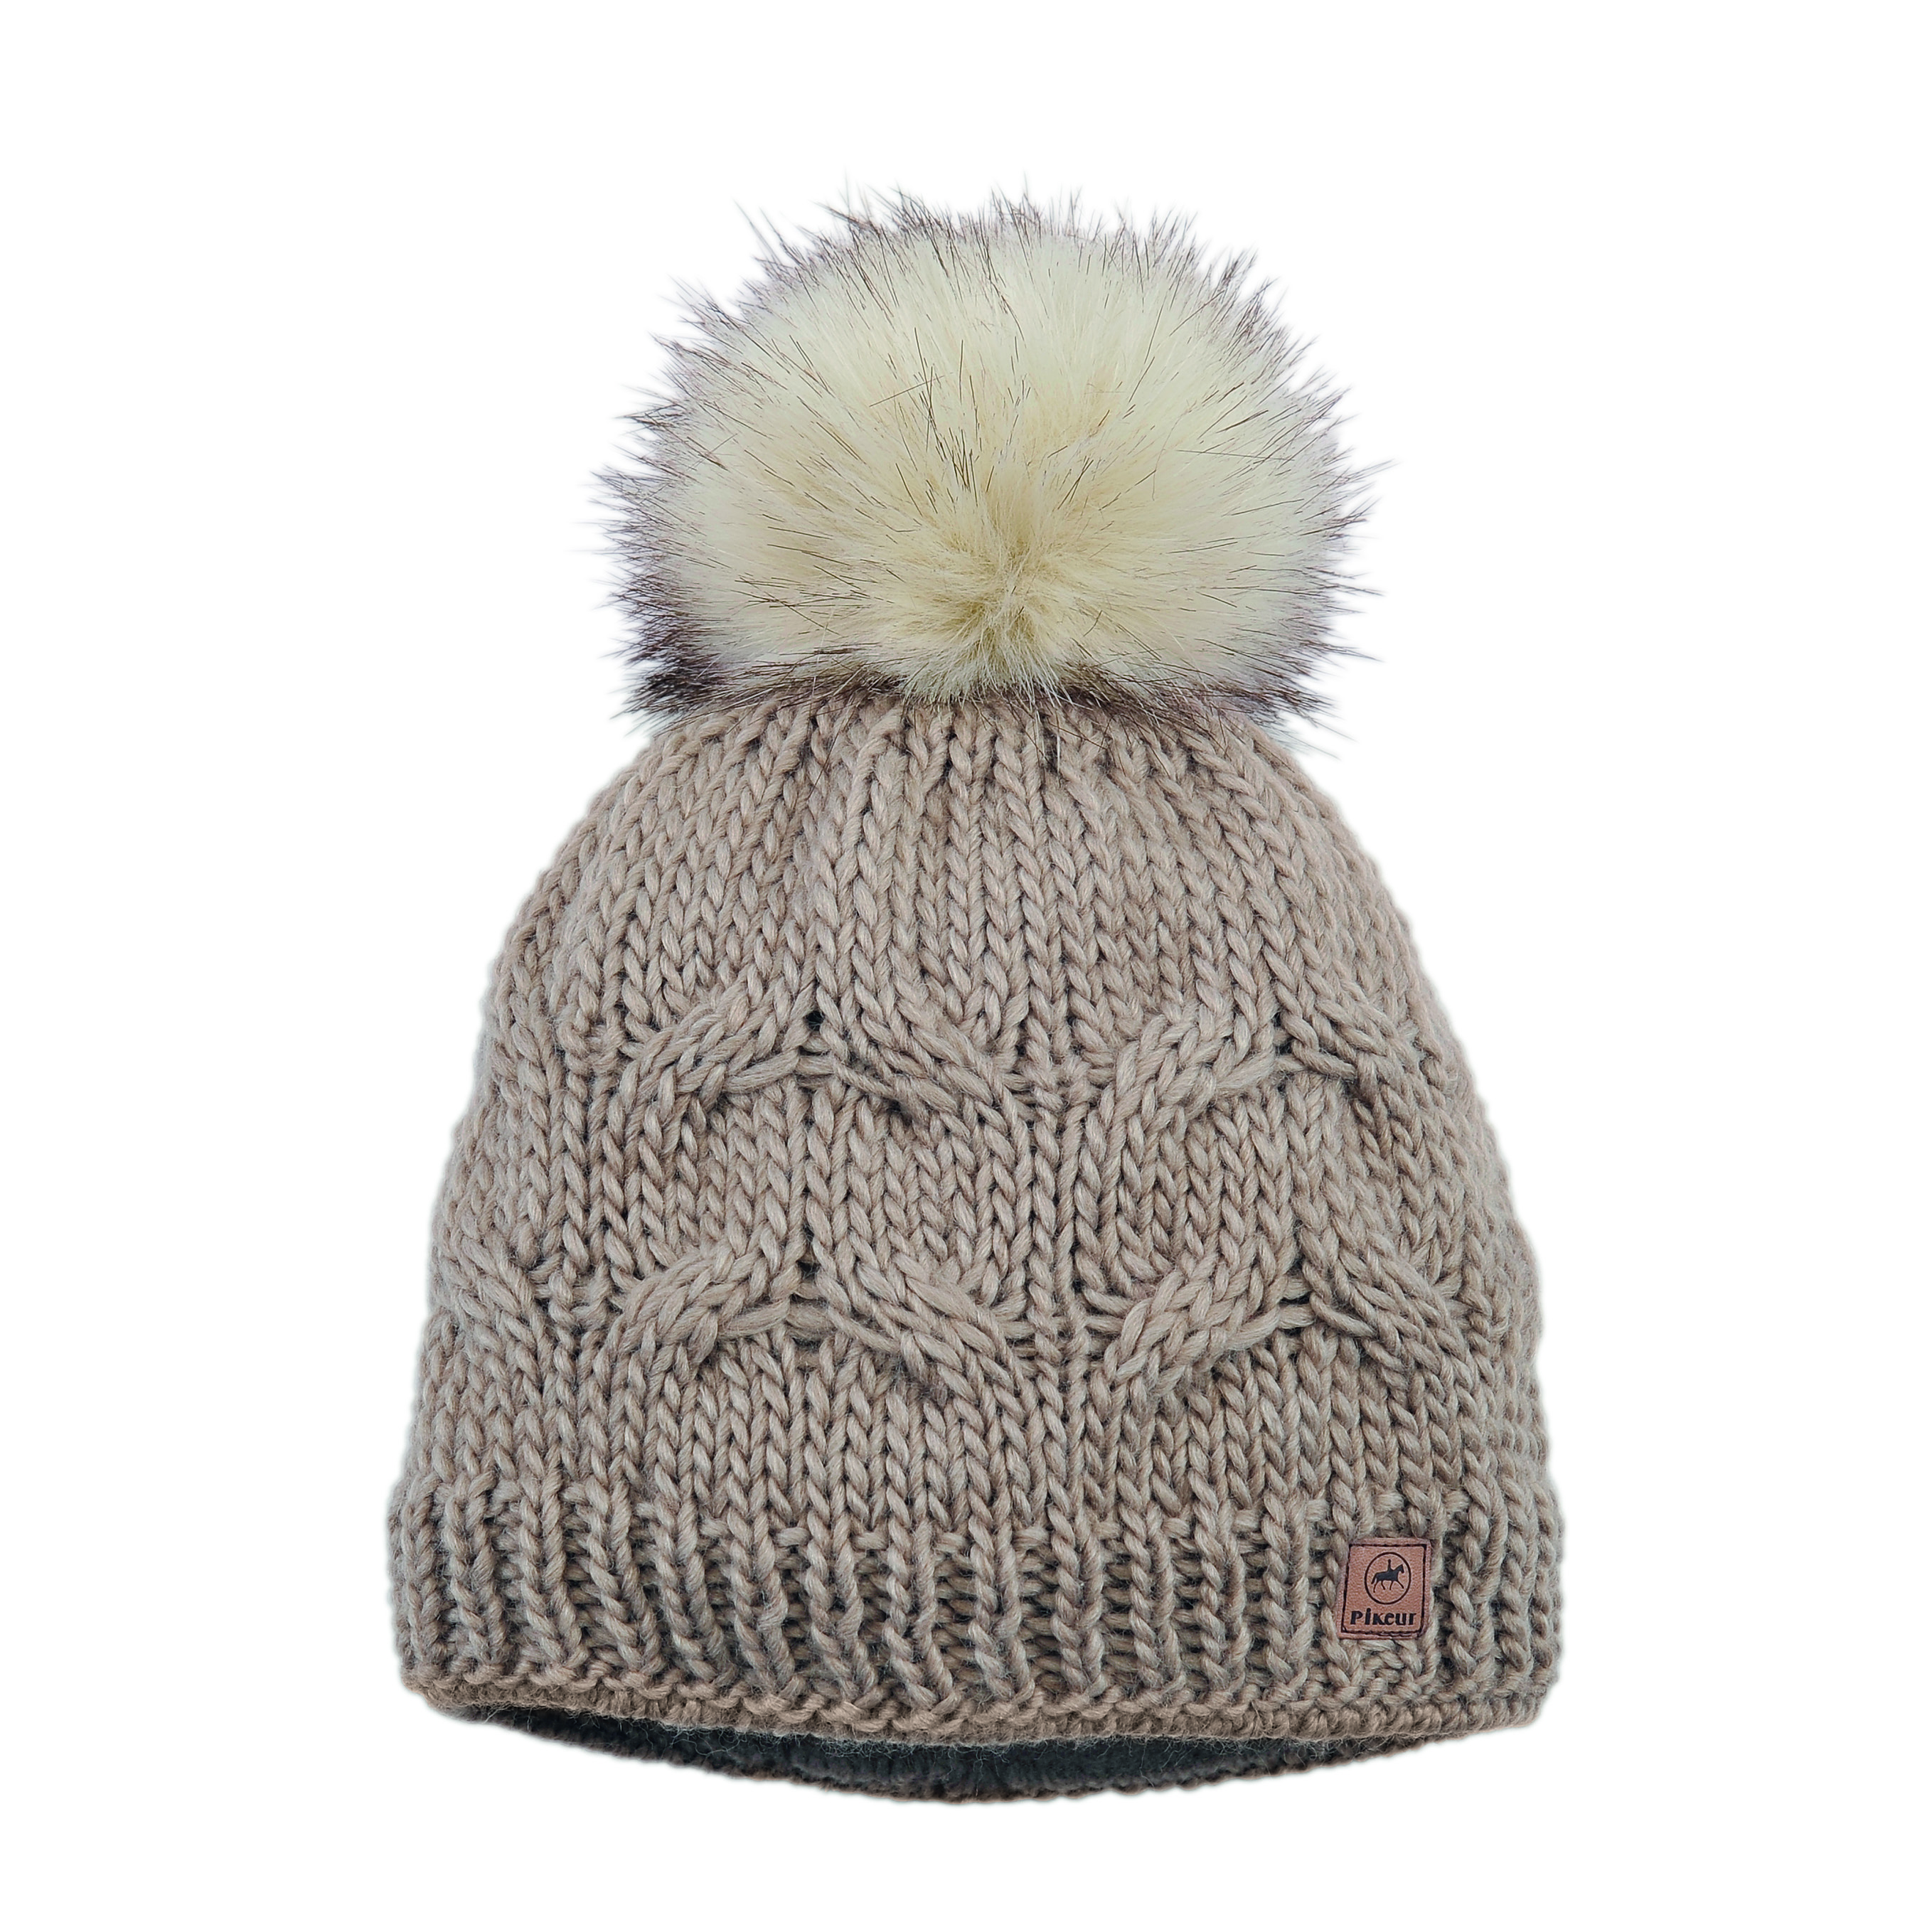 1a120e22bf7 ... reduced horseware girls bobble hat pikeur knitted bobble hat faux fur  pom pom ladies rb equestrian ...